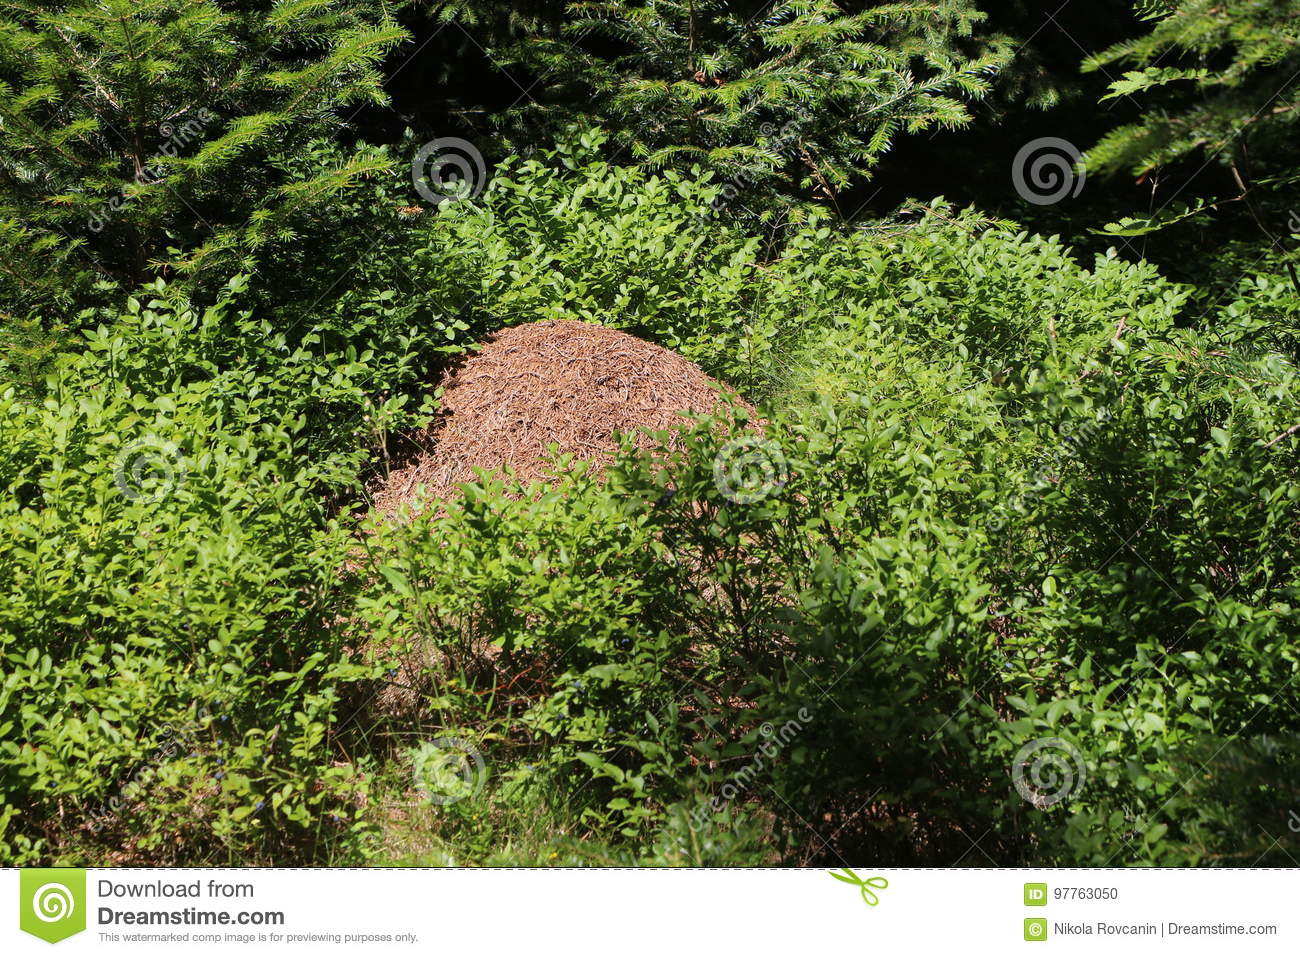 Anthill in in a blueberry bushes